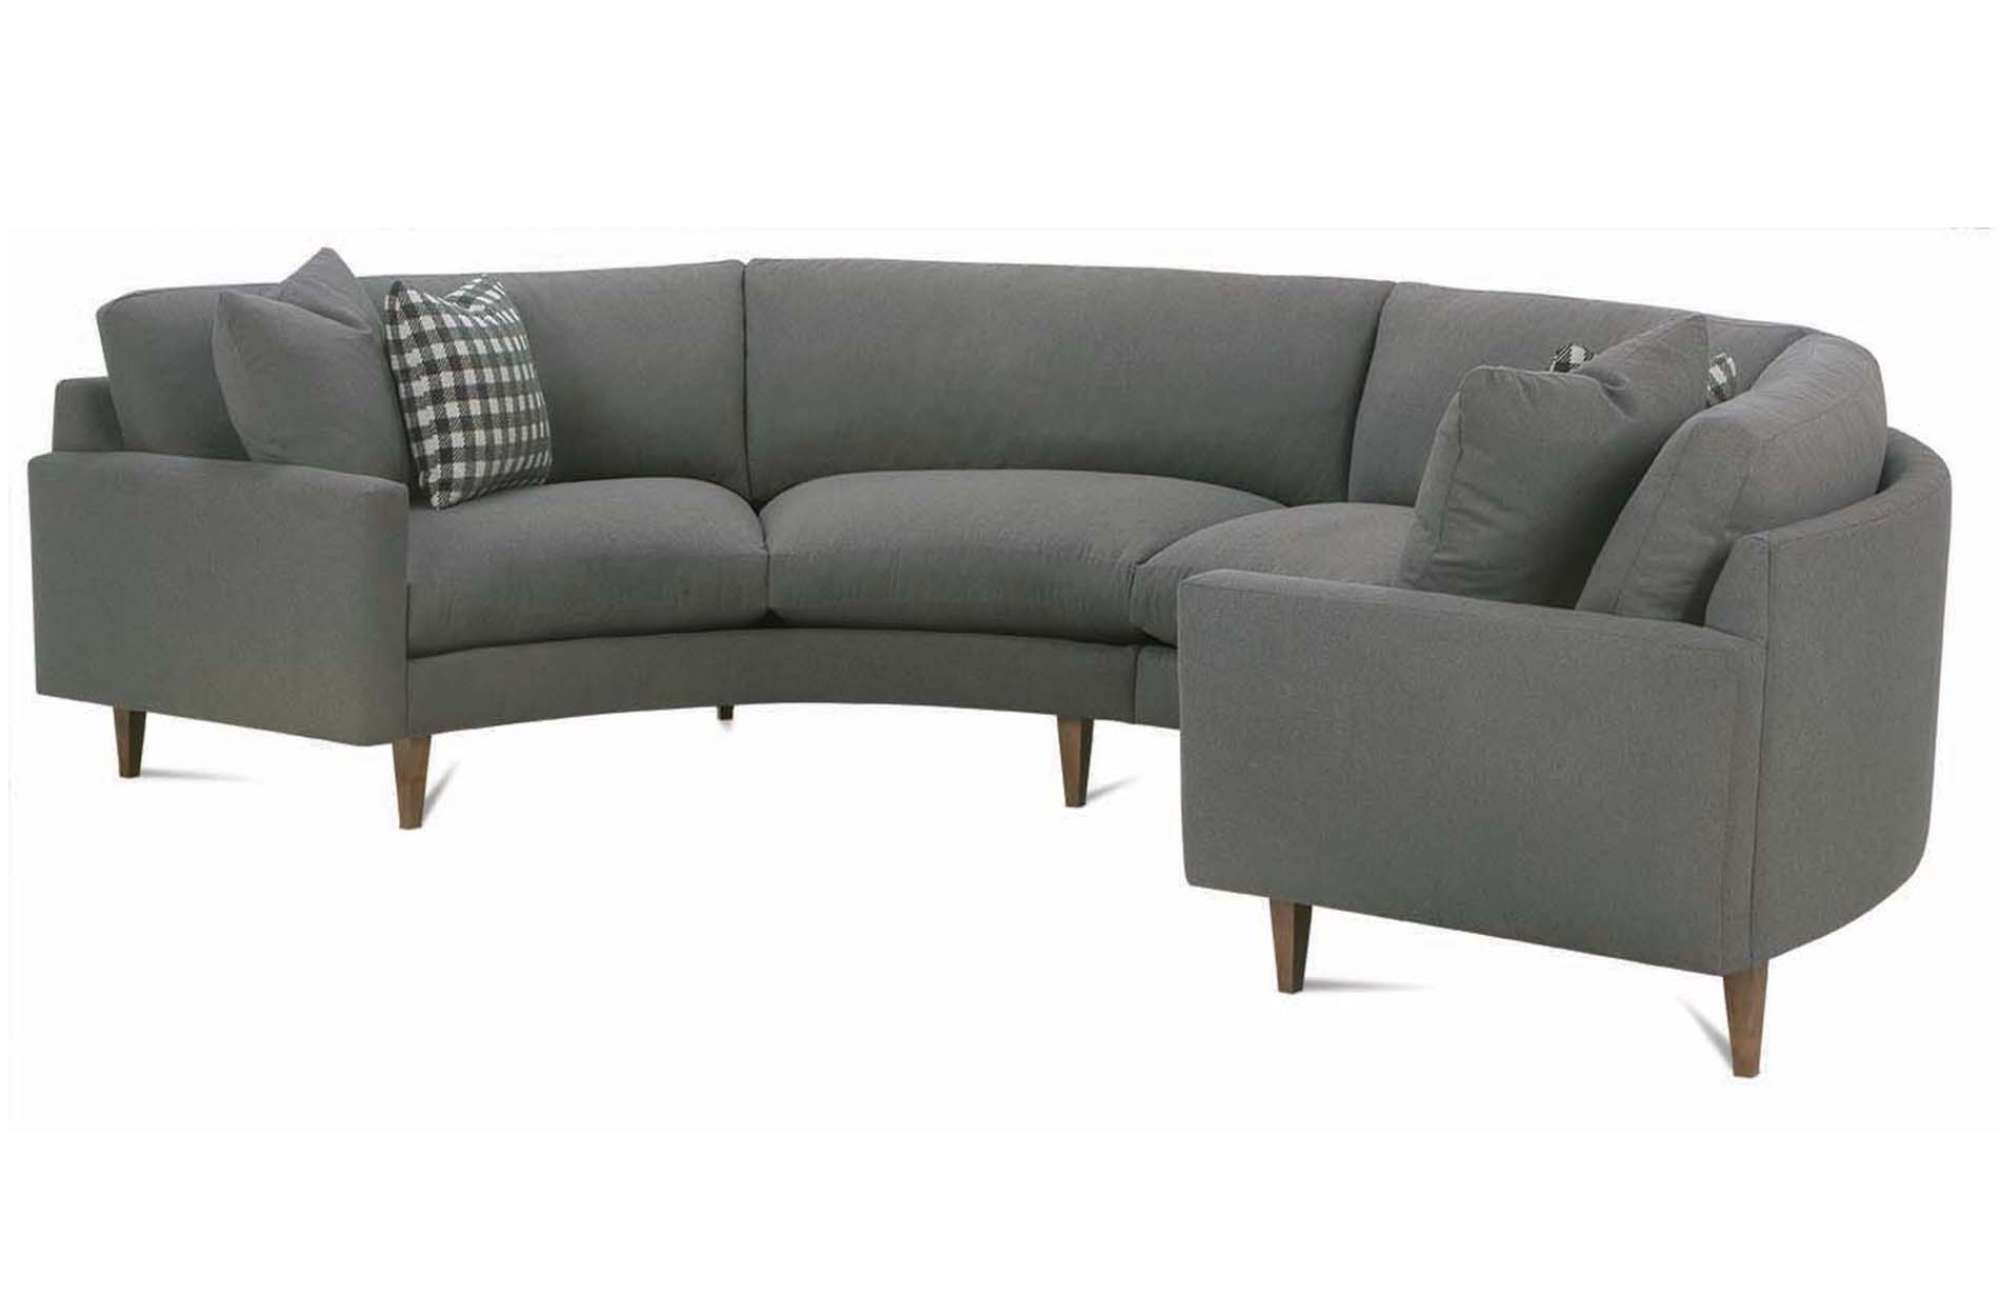 curved sofa set india chairs sofas uk awesome sectional with section